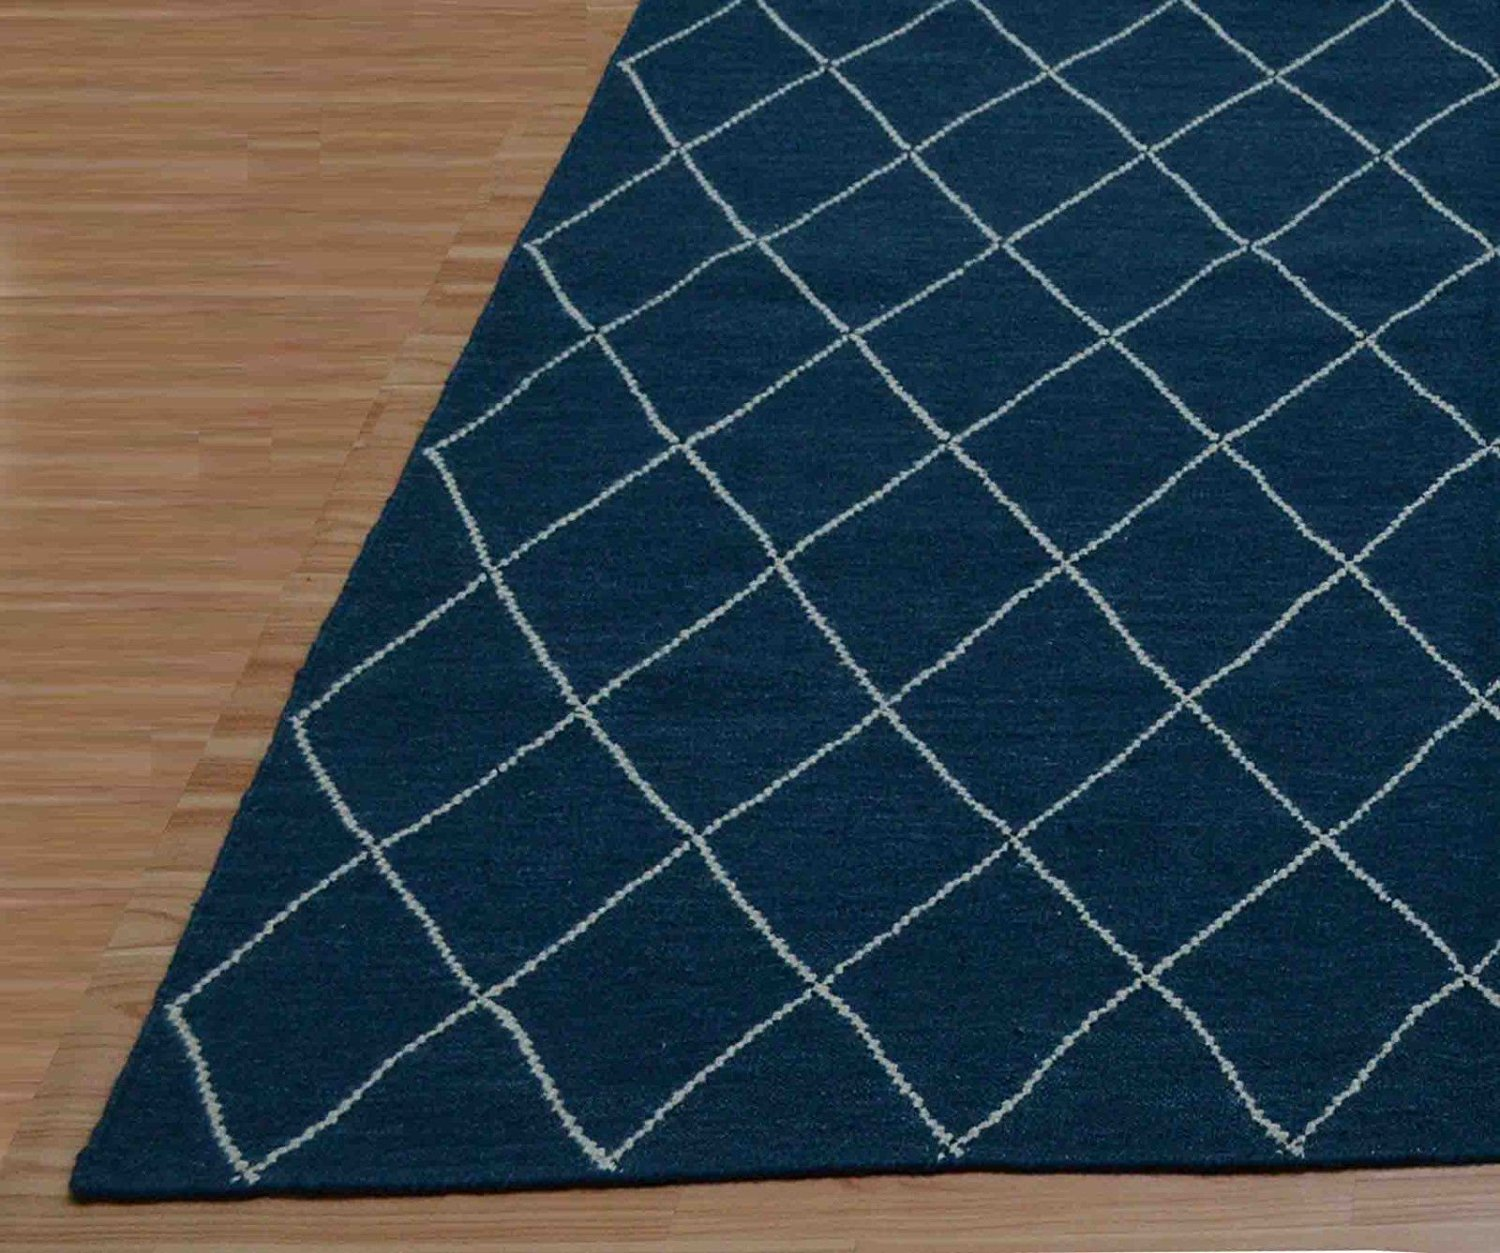 Get Quotations · Brand New 6 x 9 Ellie Trellis Blue Contemporary Style Dhurrie Wool RUGS EDH ;PMN